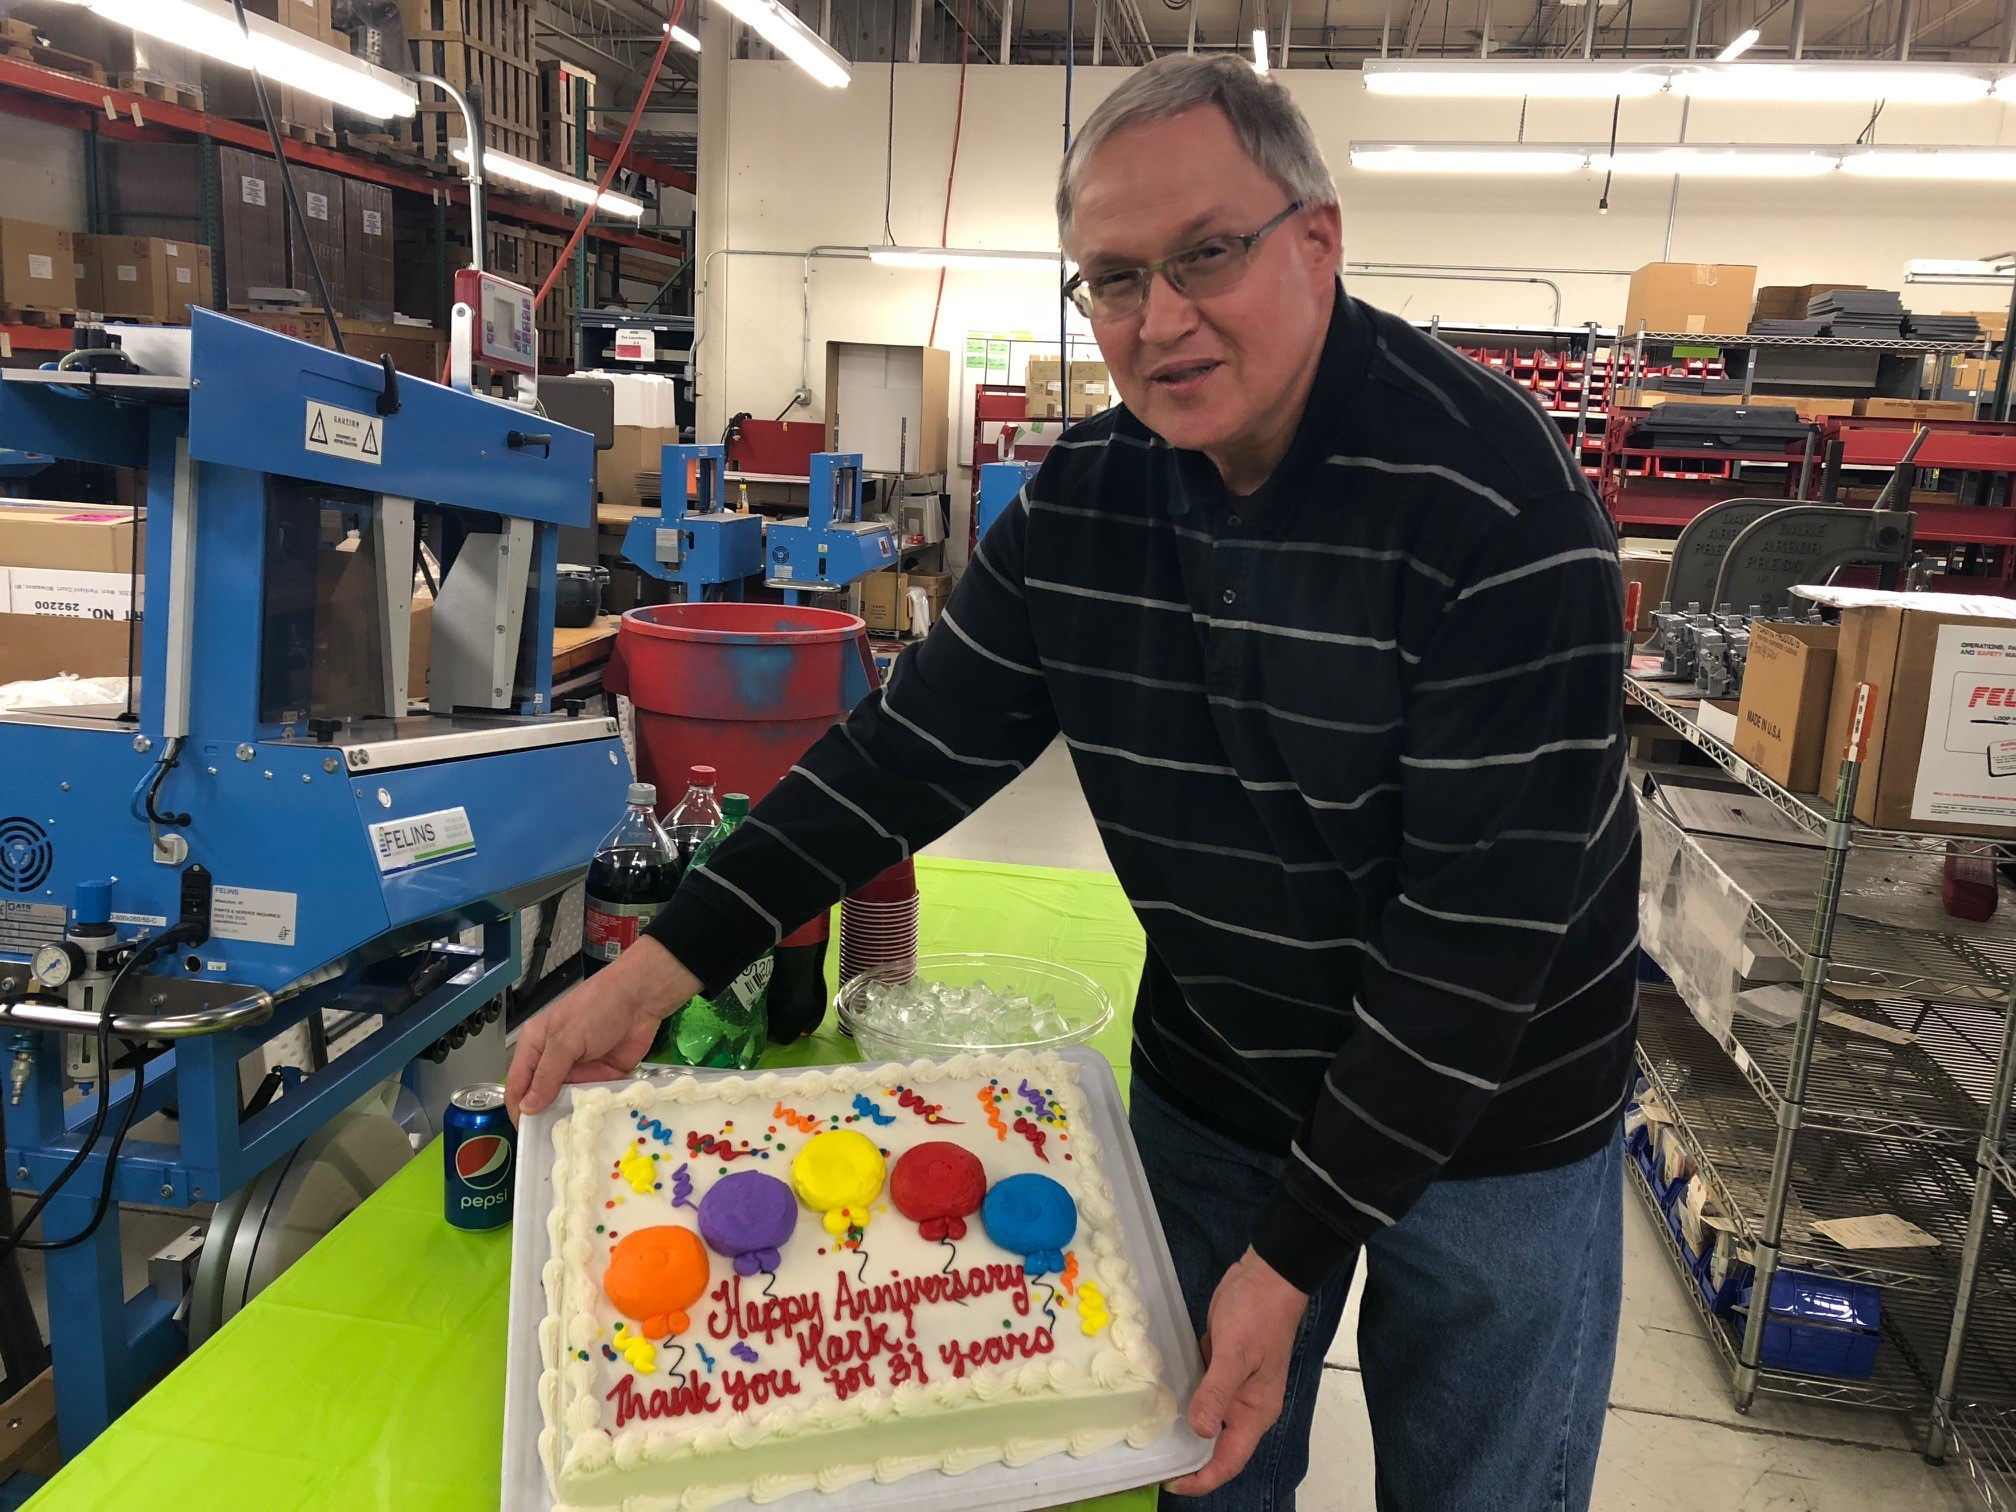 Felins production machinist retirement